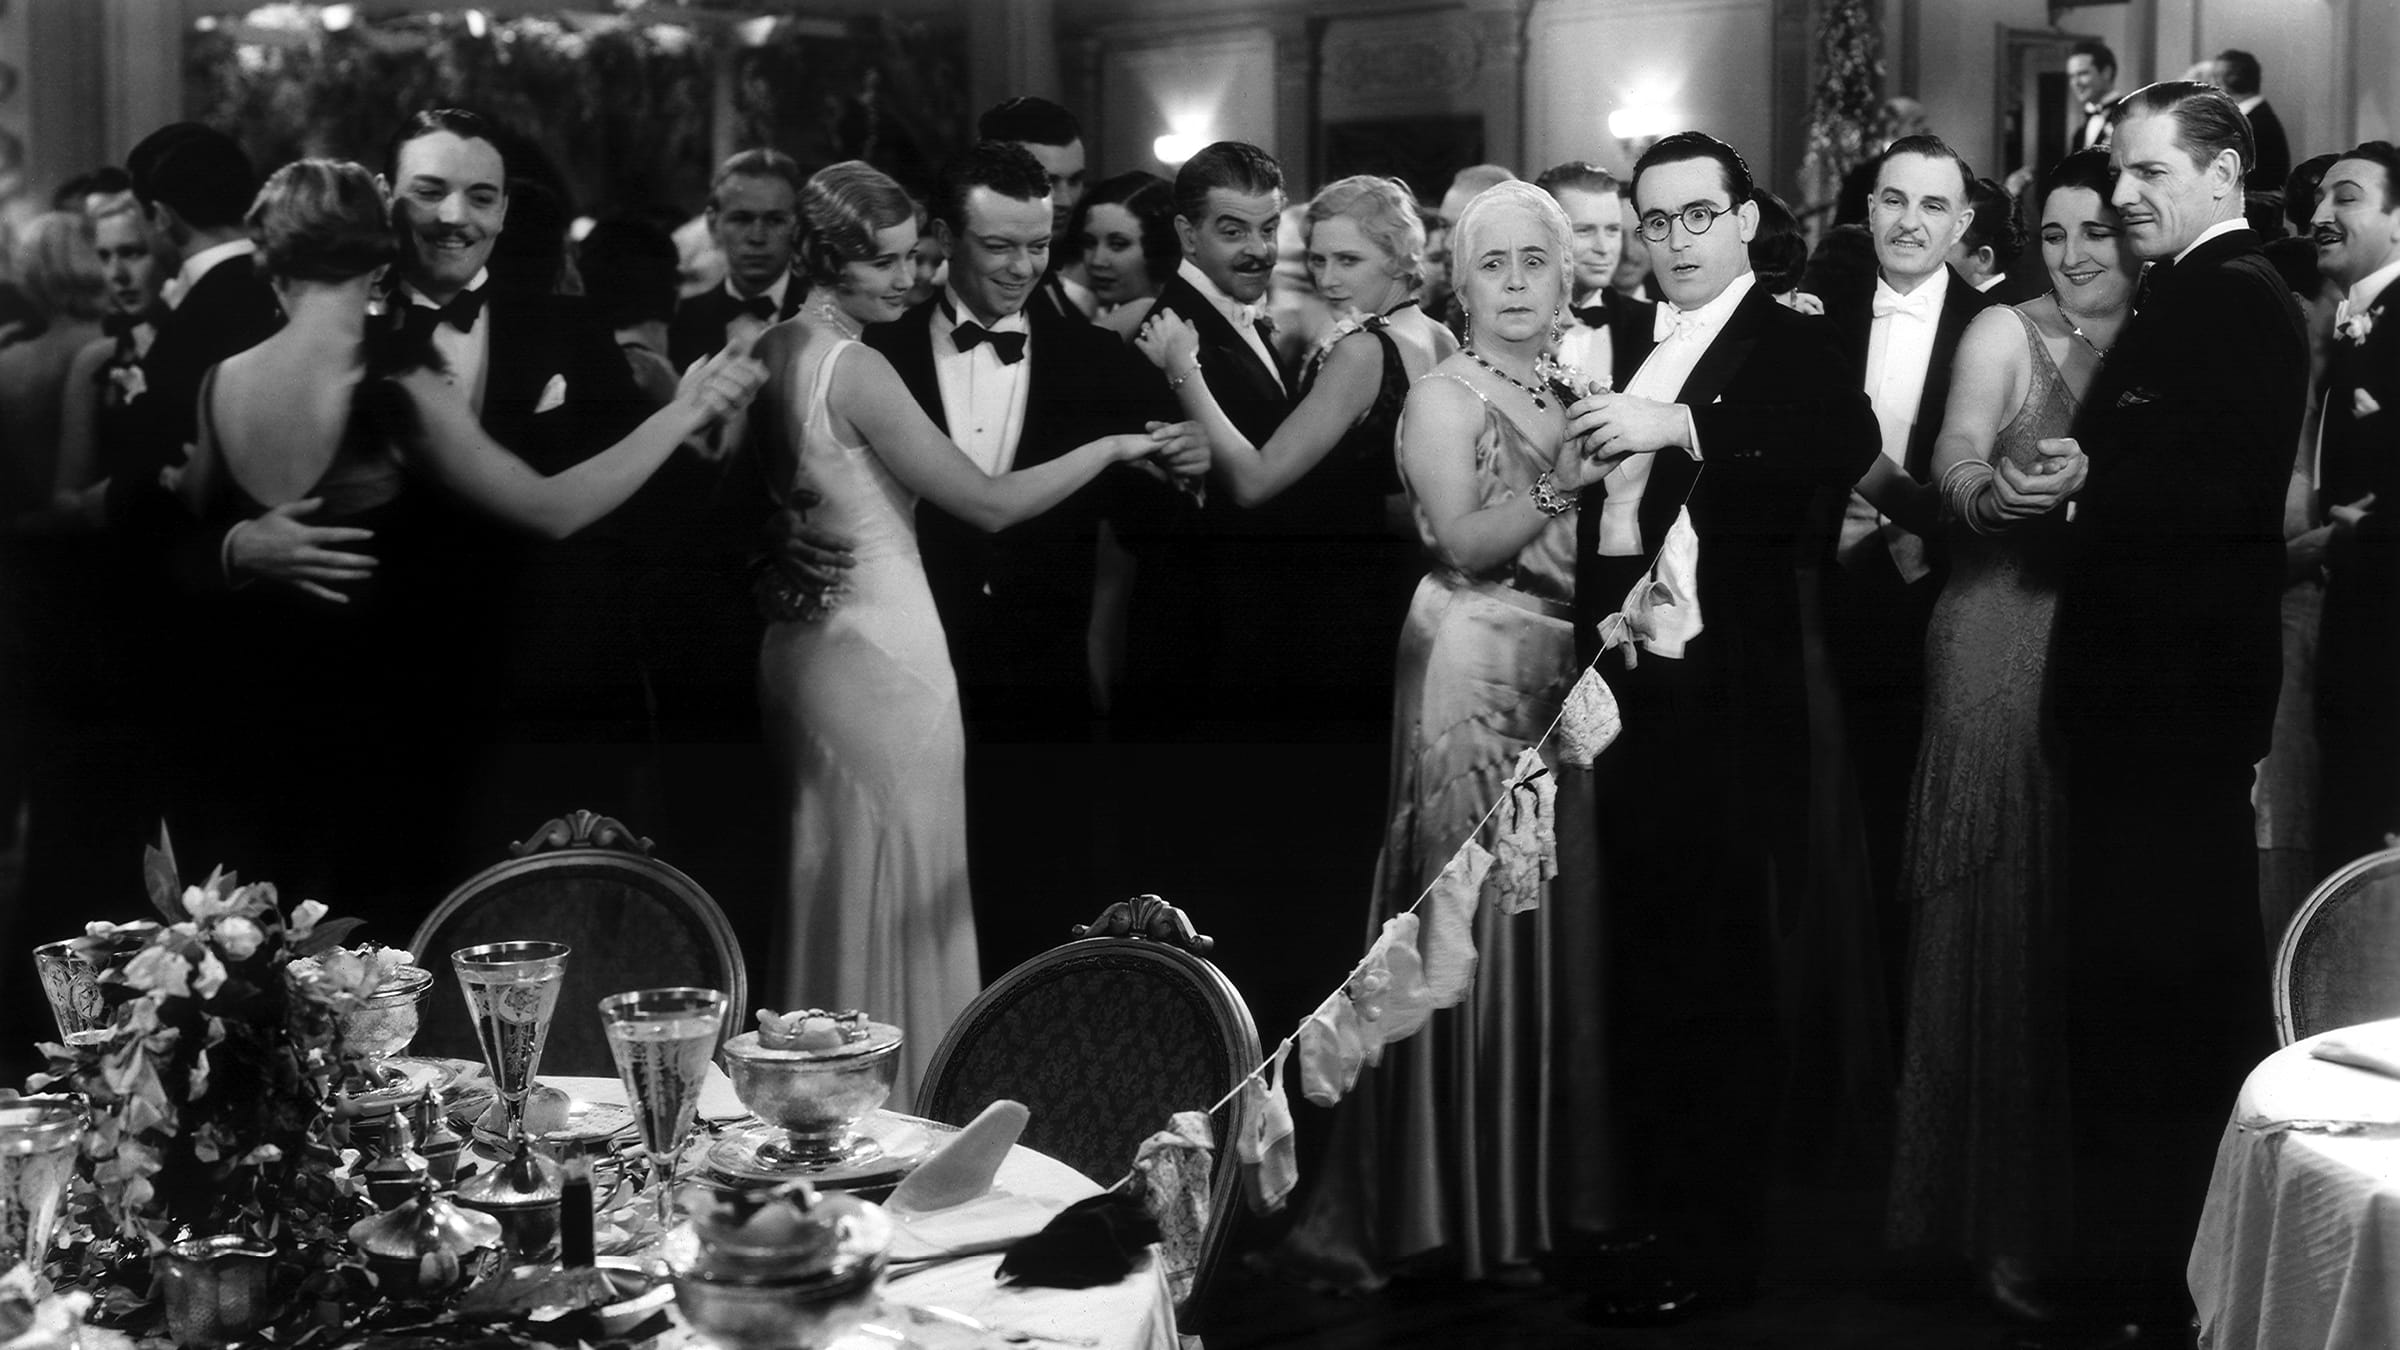 Harold Lloyd Has Something to Say: The Silent Master's Funniest Talkie